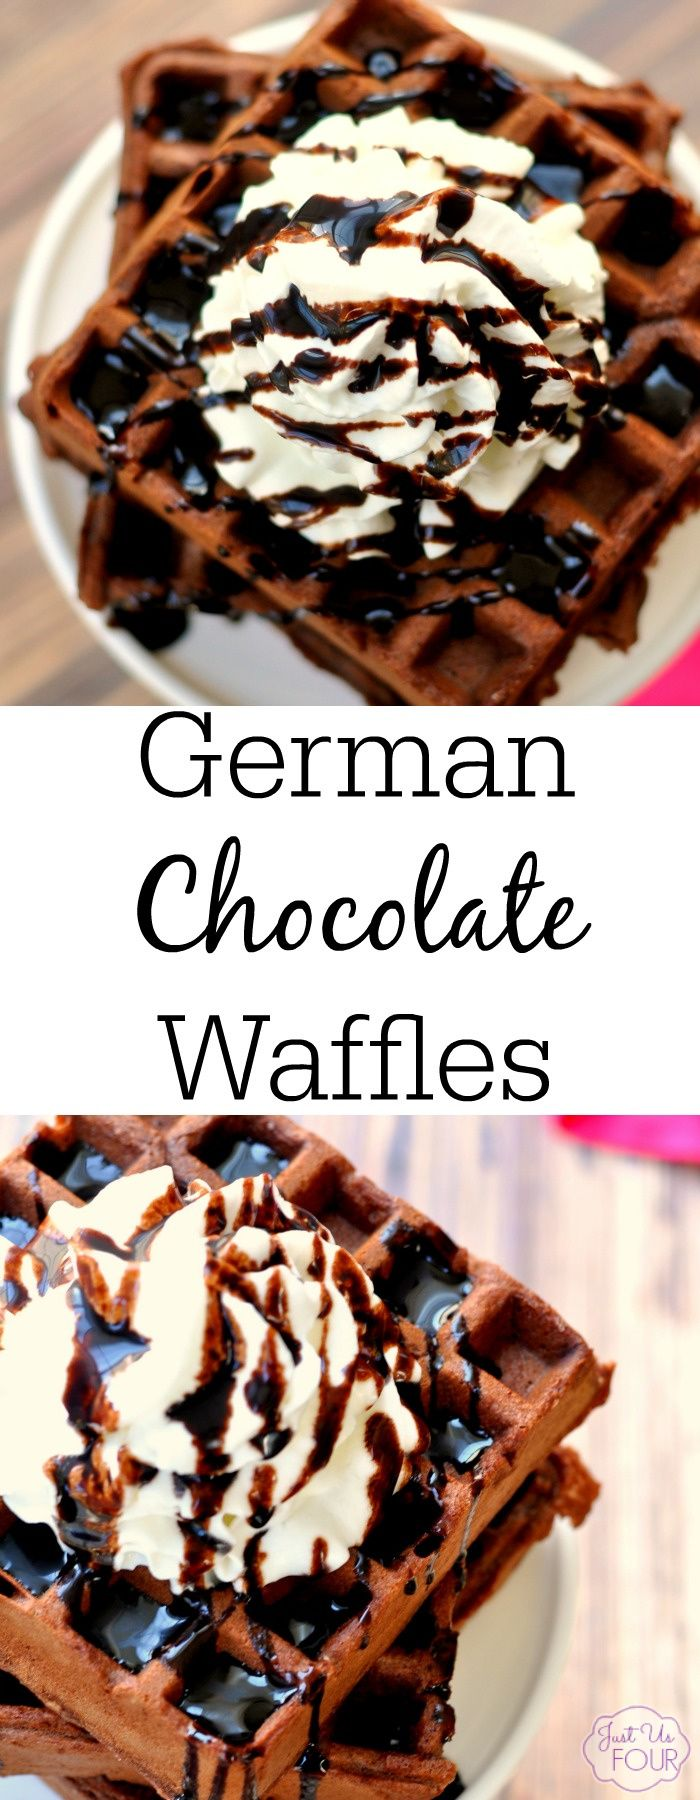 German chocolate waffles are the perfect sweet breakfast treat. Or, serve them for dessert.